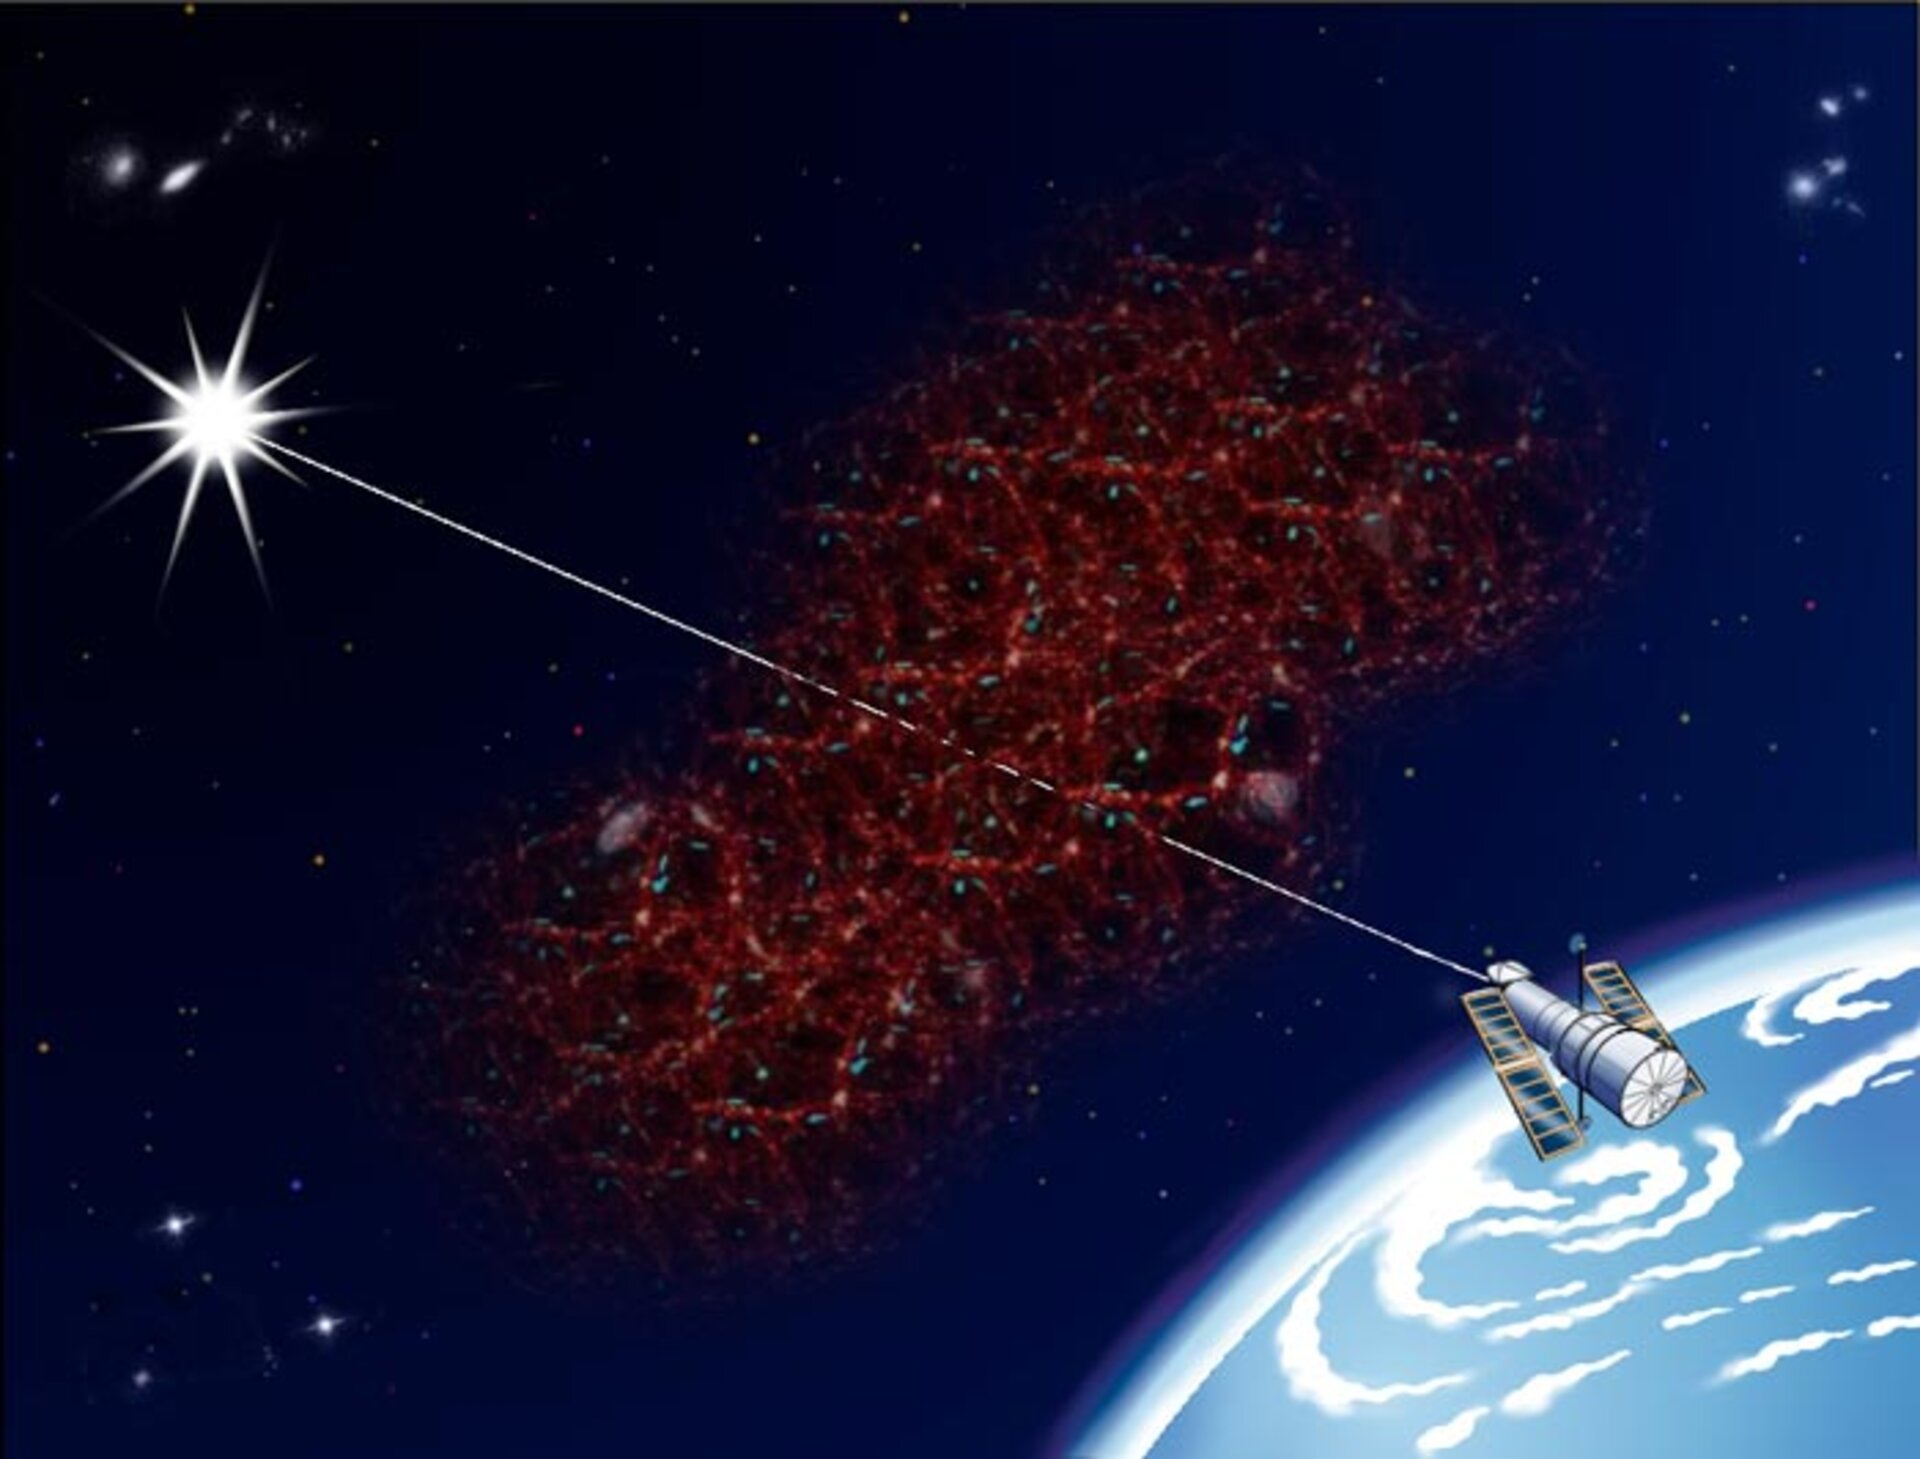 Artist's impression of Hubble detecting vast filaments of invisible hydrogen